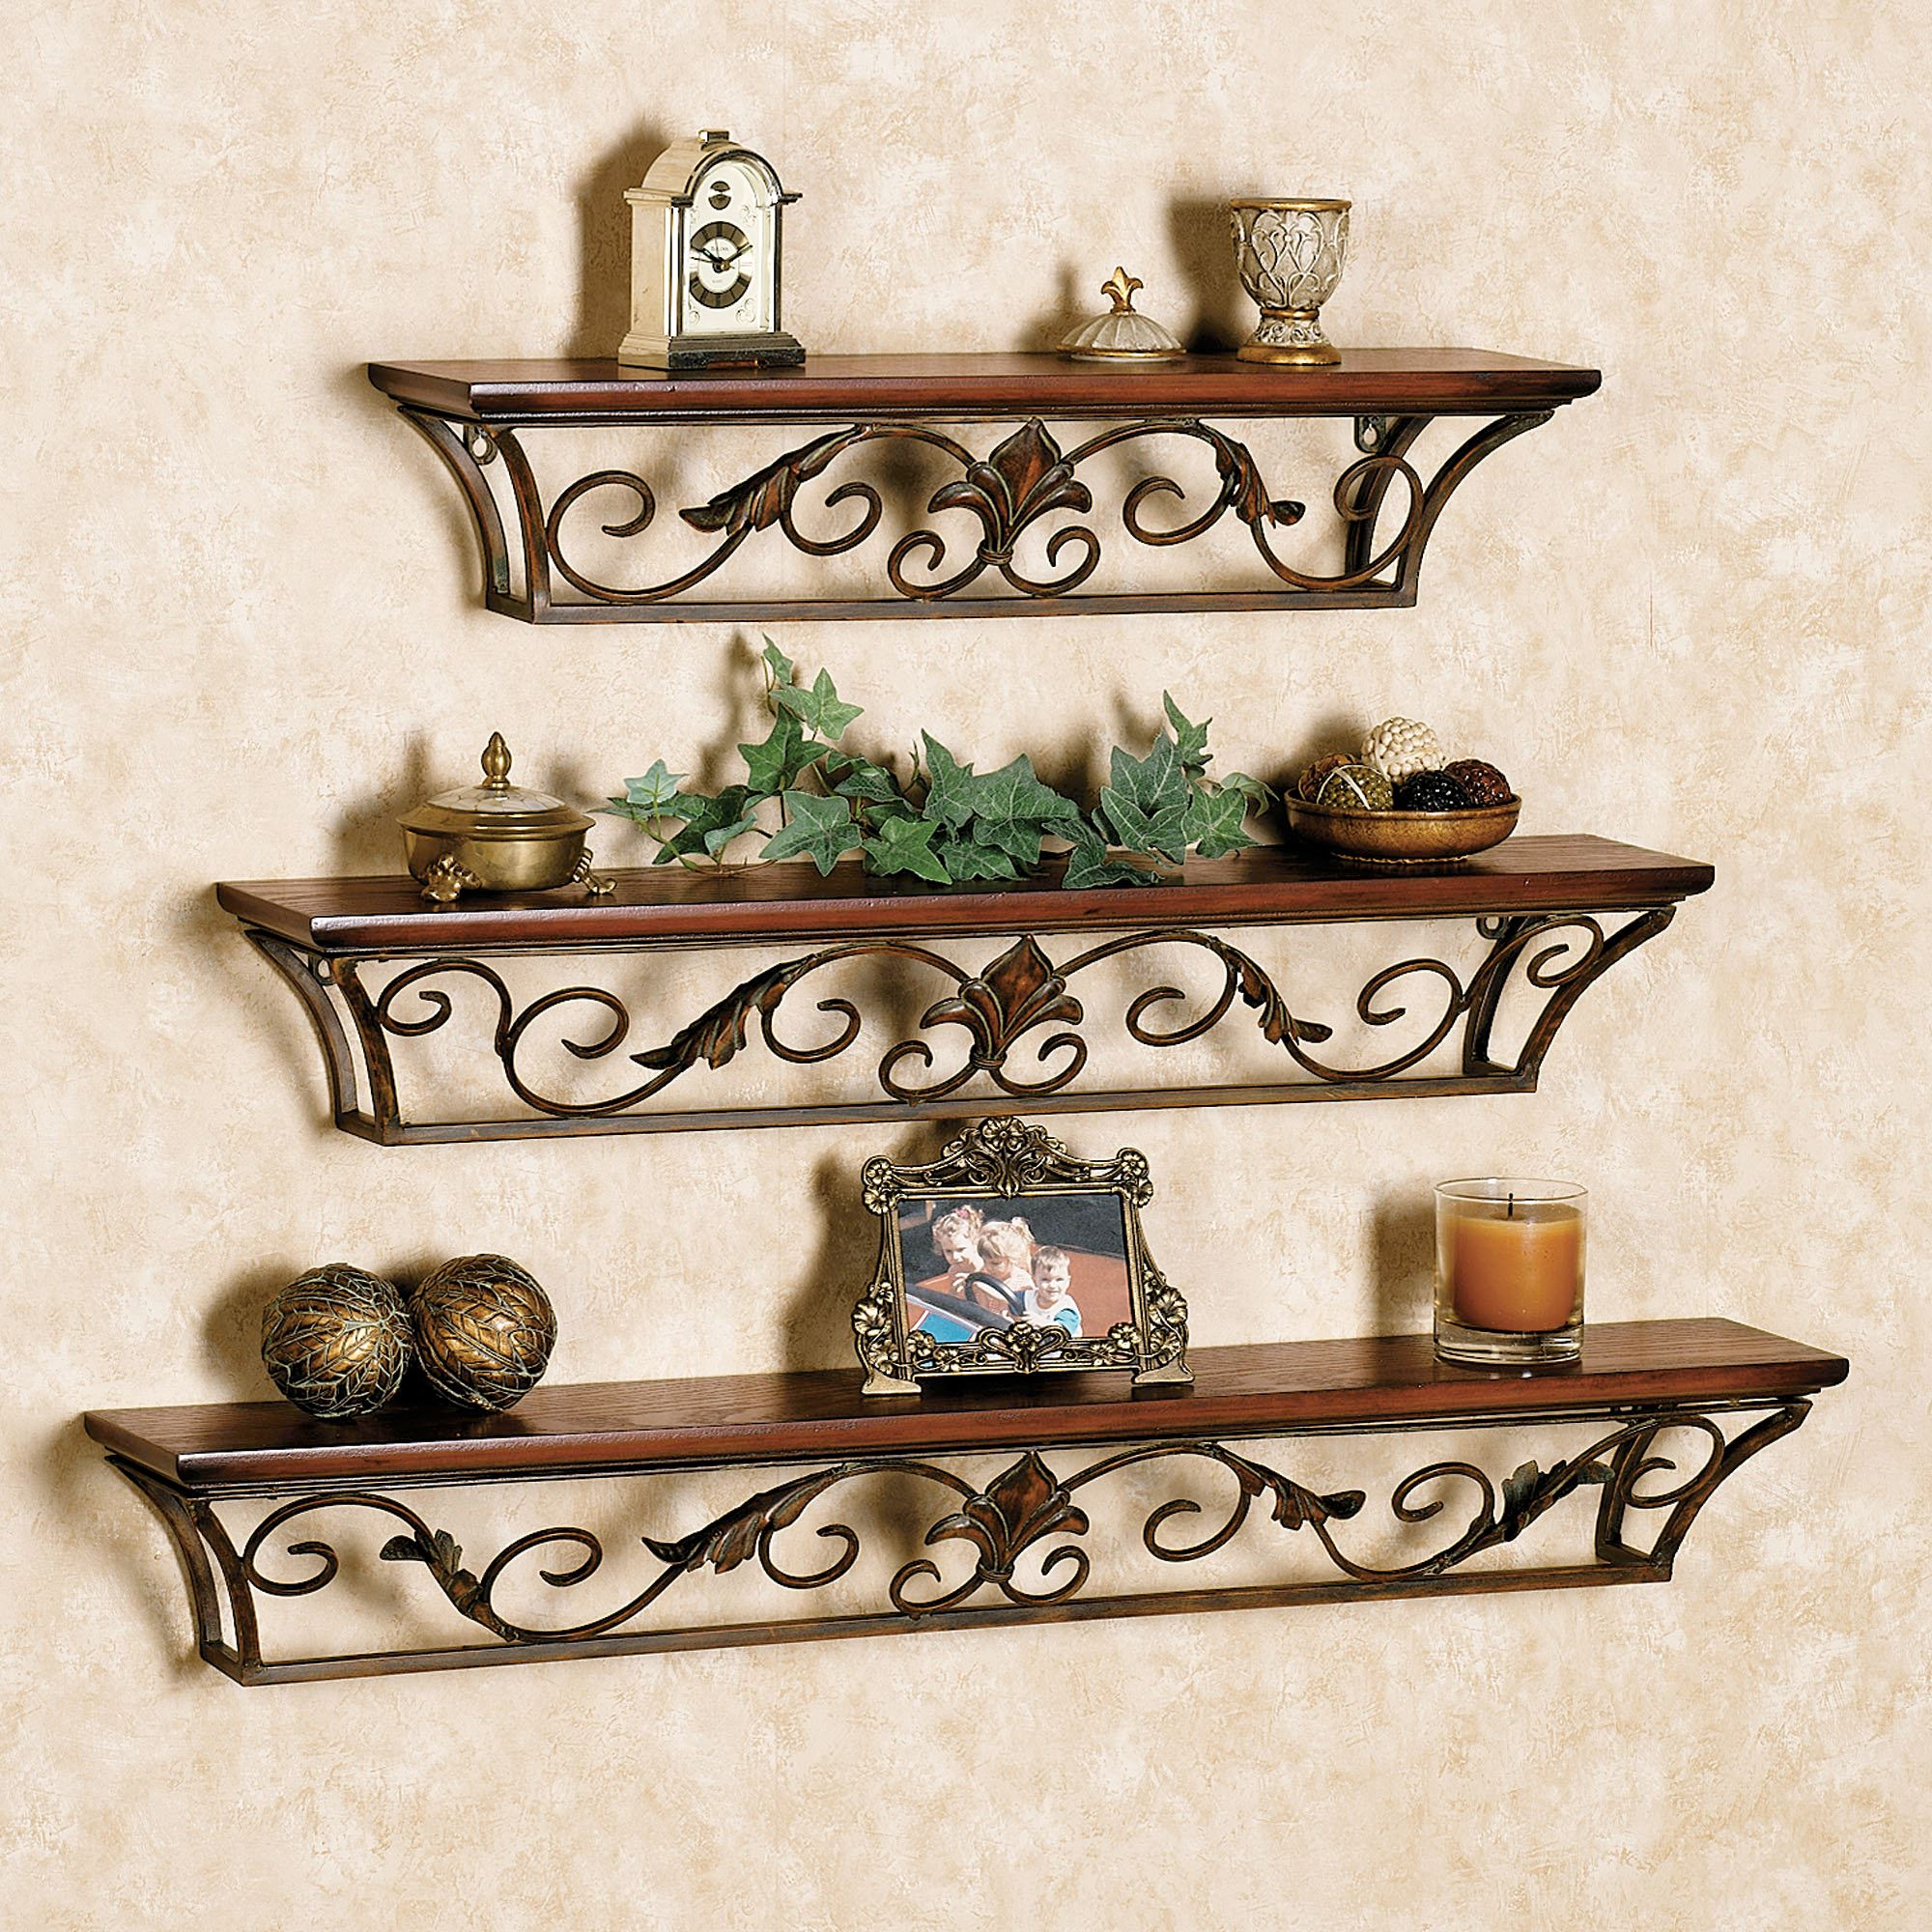 Dagian wall shelves - Wall metal shelf ...